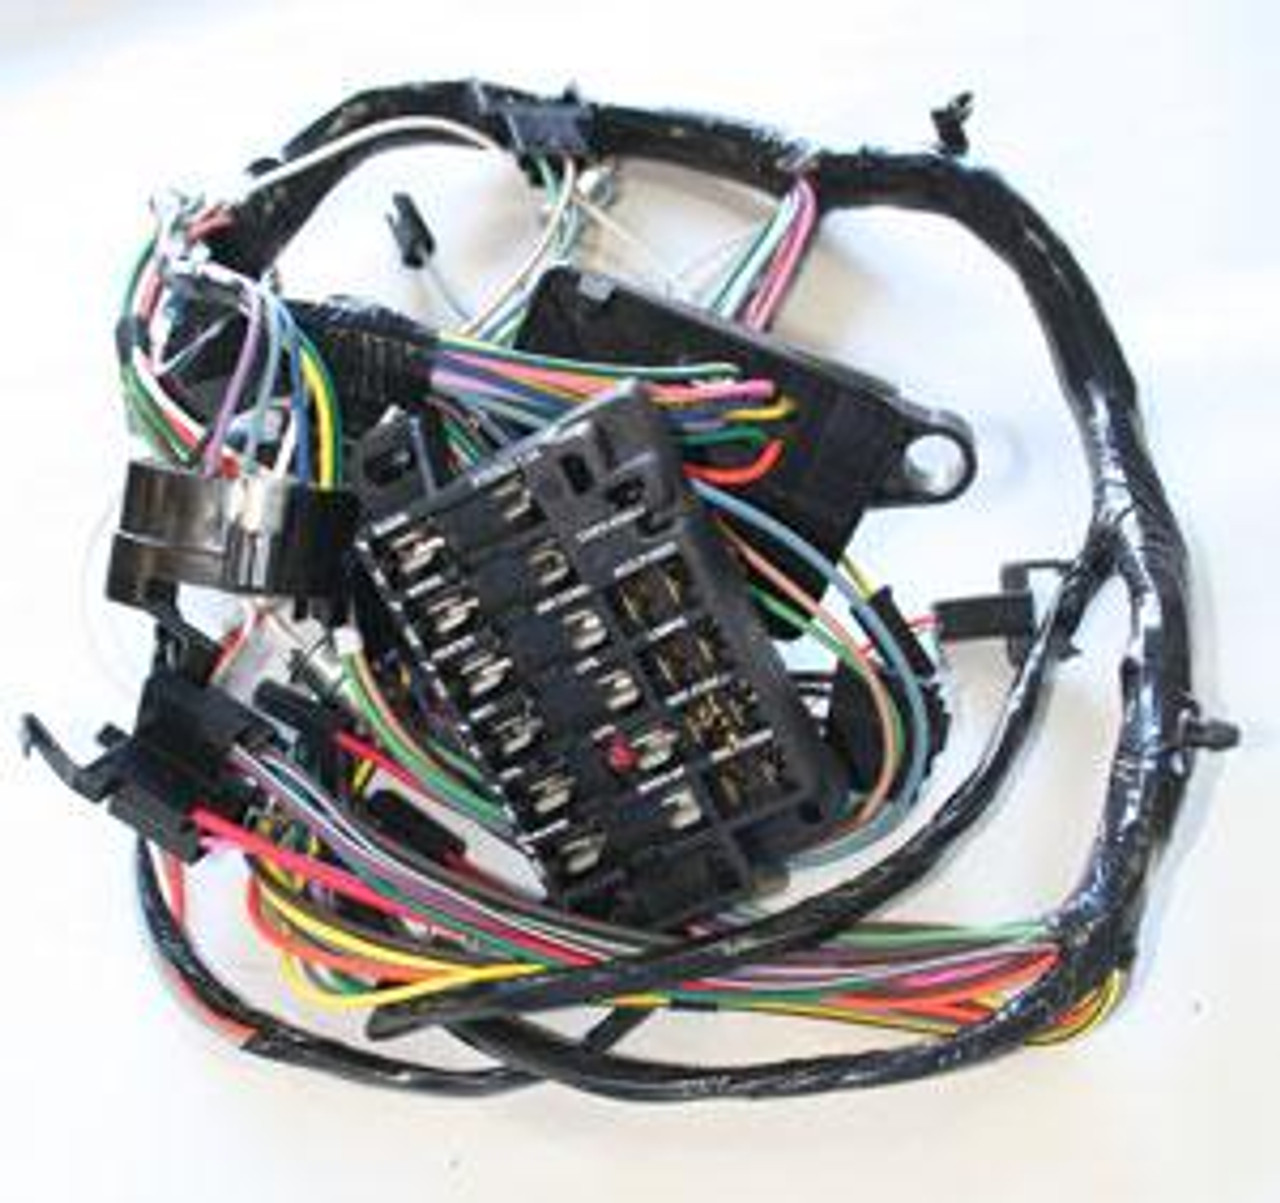 1965 Chevelle, El Camino Dash Harness, with Warning Lights (CH59048)